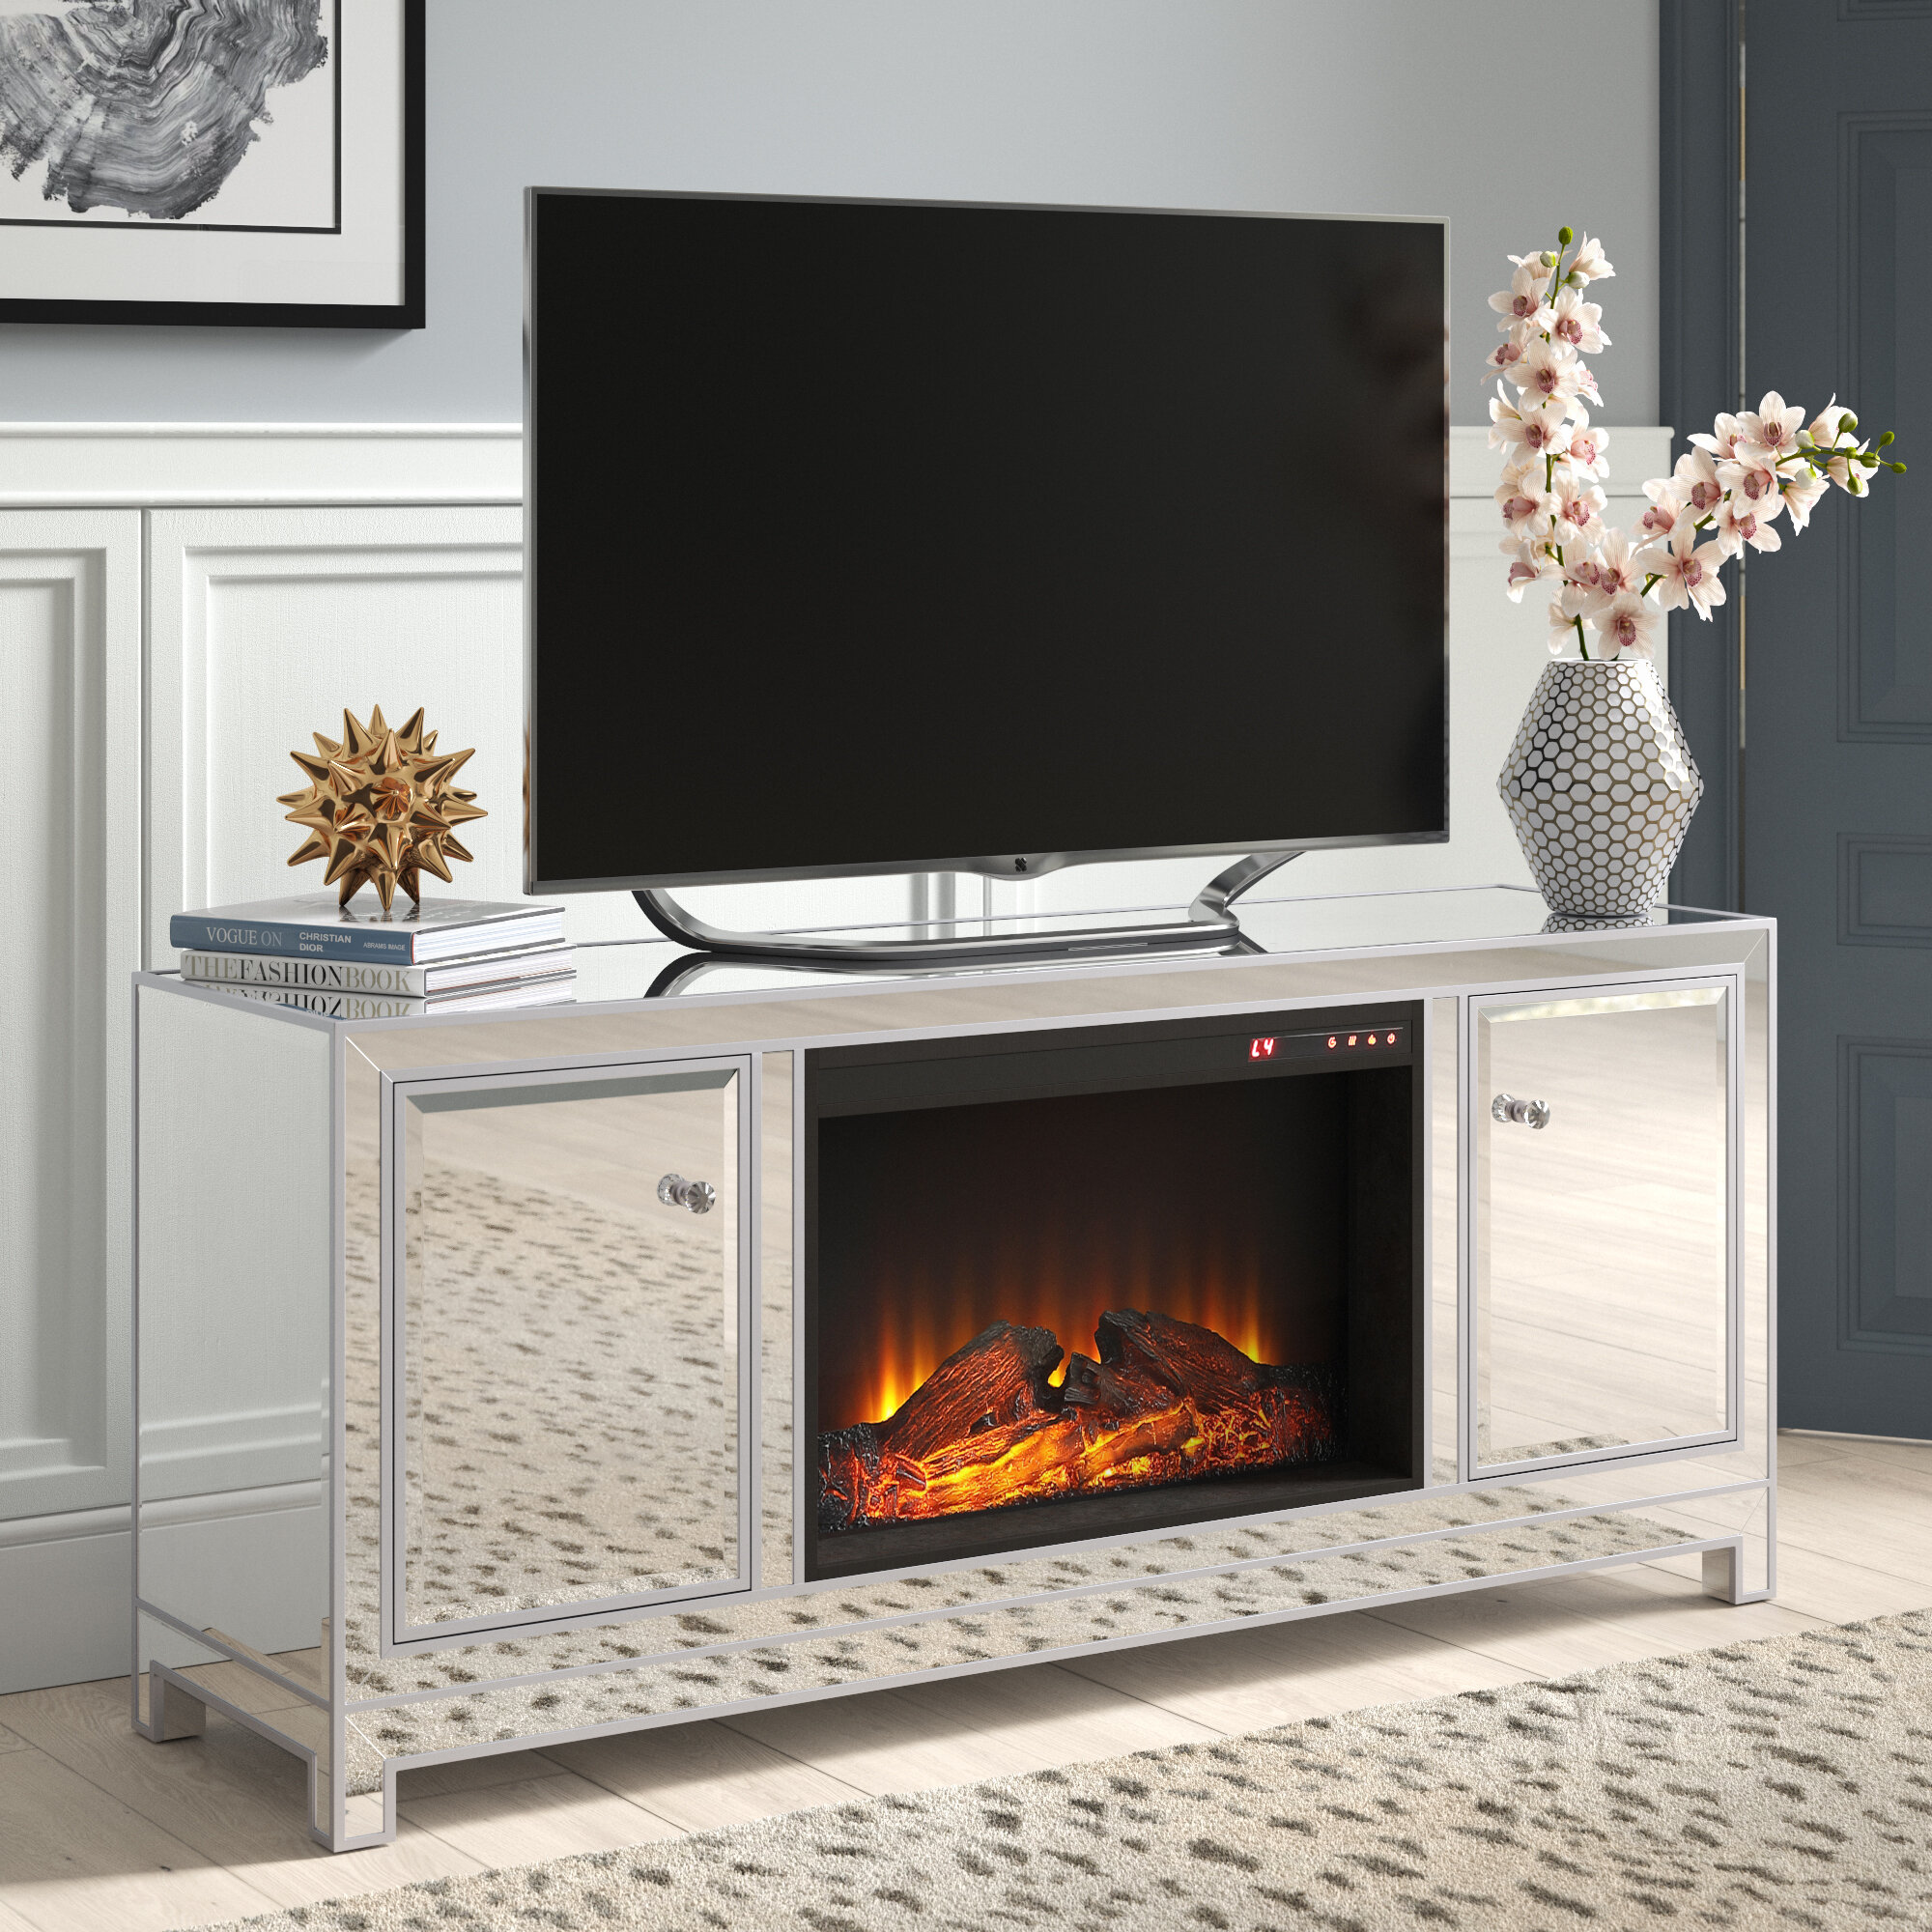 House Of Hampton Laylah Tv Stand For Tvs Up To 70 With Fireplace